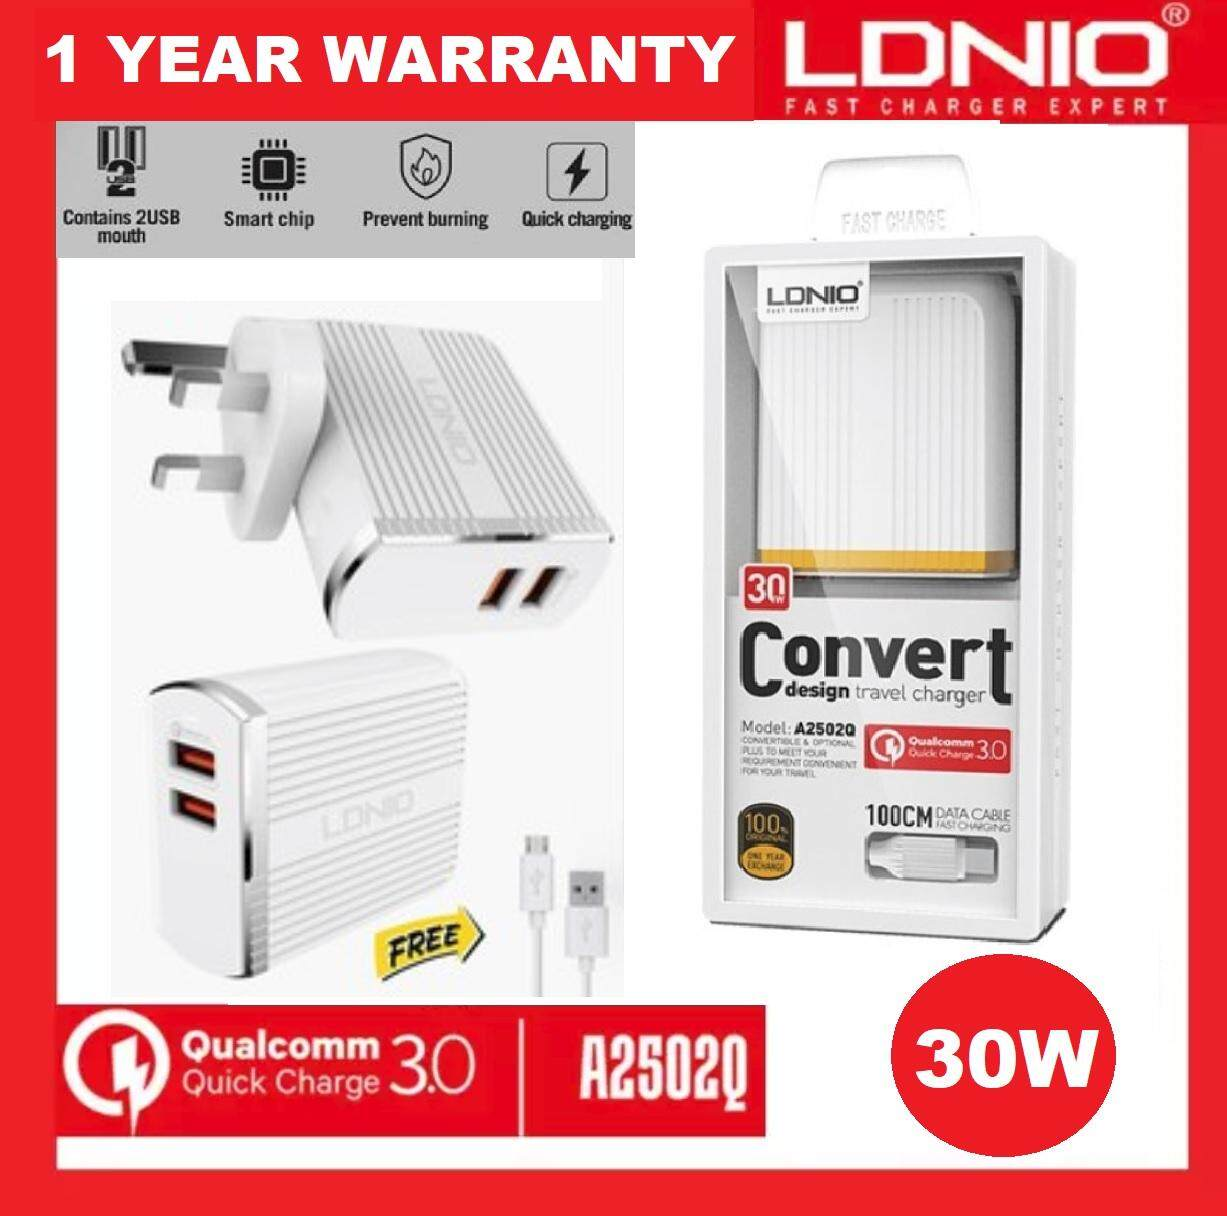 Ldnio Products For The Best Prices In Malaysia Travel Charger Oppo Qualcomm 30 1year Wrty 2018 A2502q 30w Qc Uk Plug